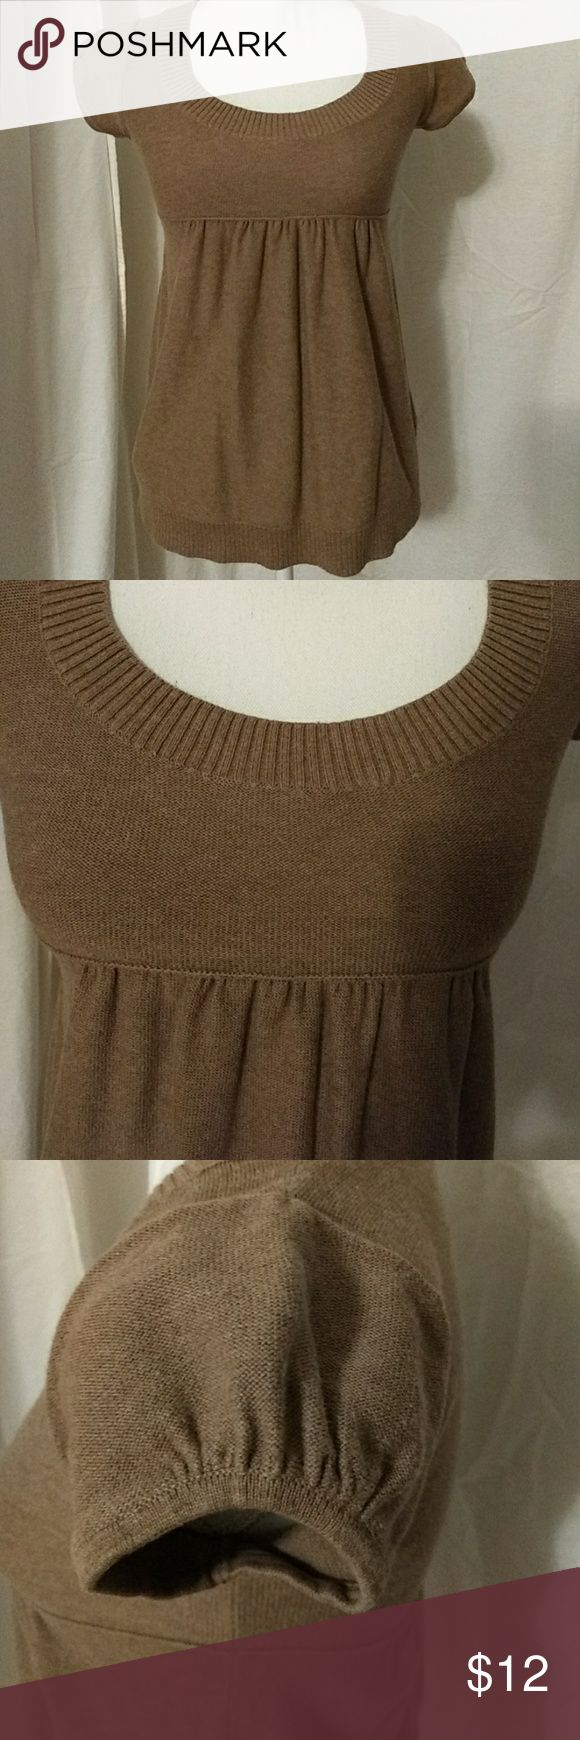 """Like New Scoop Neck Empire Waist Sweater Tunic Worn Once. Tan/Light brown sweater tunic with ribbed trim at neckline and hem. Slight ruching at top of sleeves, under bust and in middle of back. 100% Cotton. Length: 24.5"""" Bust: 28"""" Bottom Hem Opening: 38"""" Old Navy Tops"""